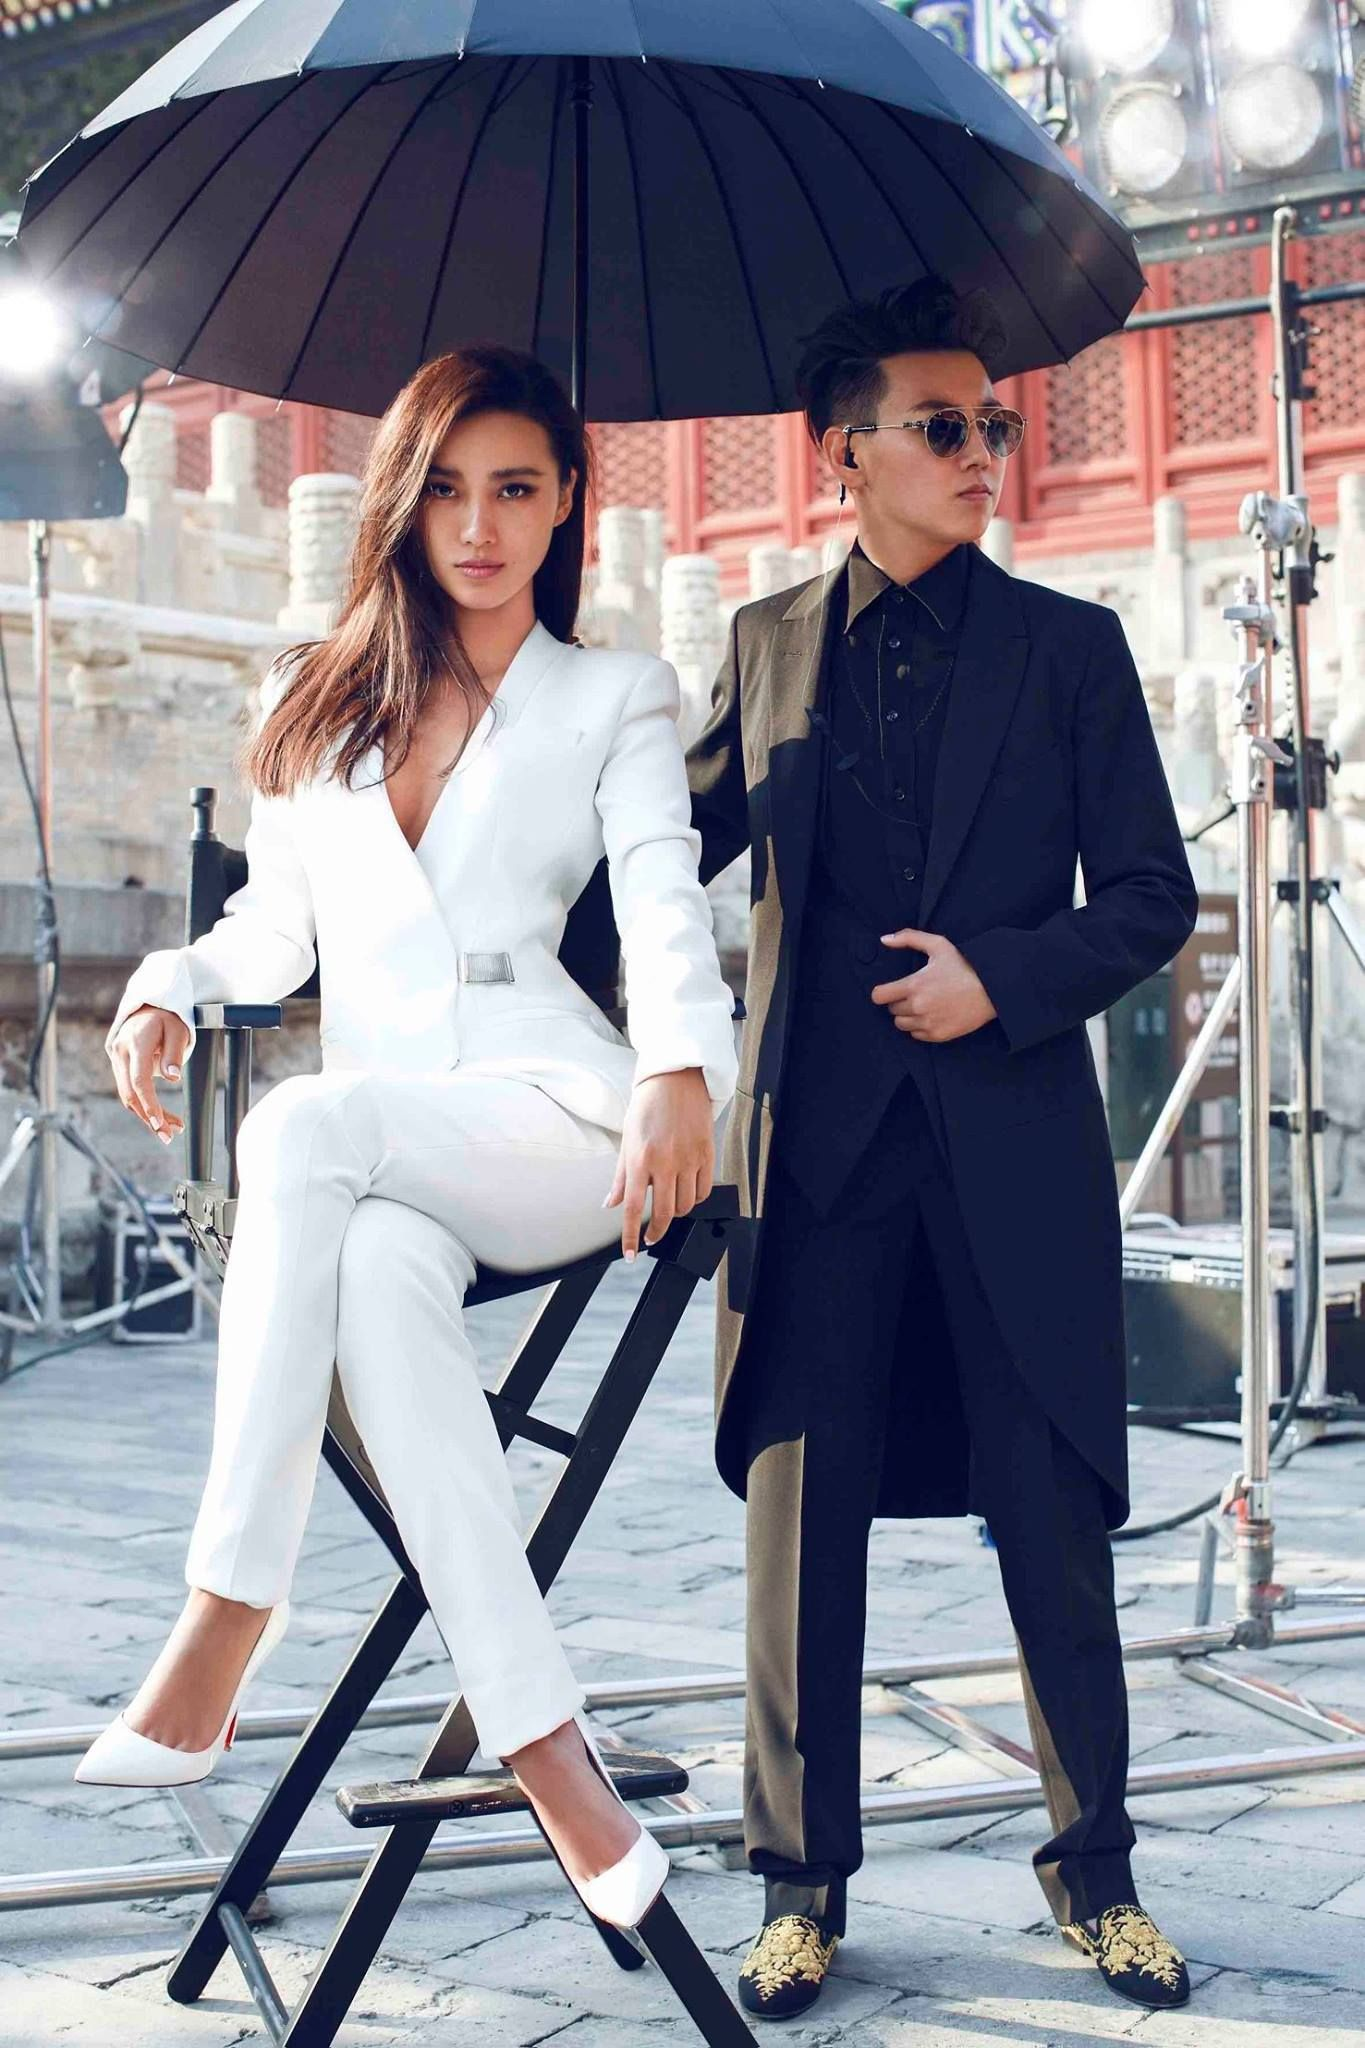 White pantsuit and white pumps as seen on fashion photographer Chen Man for Harper's Bazaar China 2015 // Alternate wedding outfit inspiration